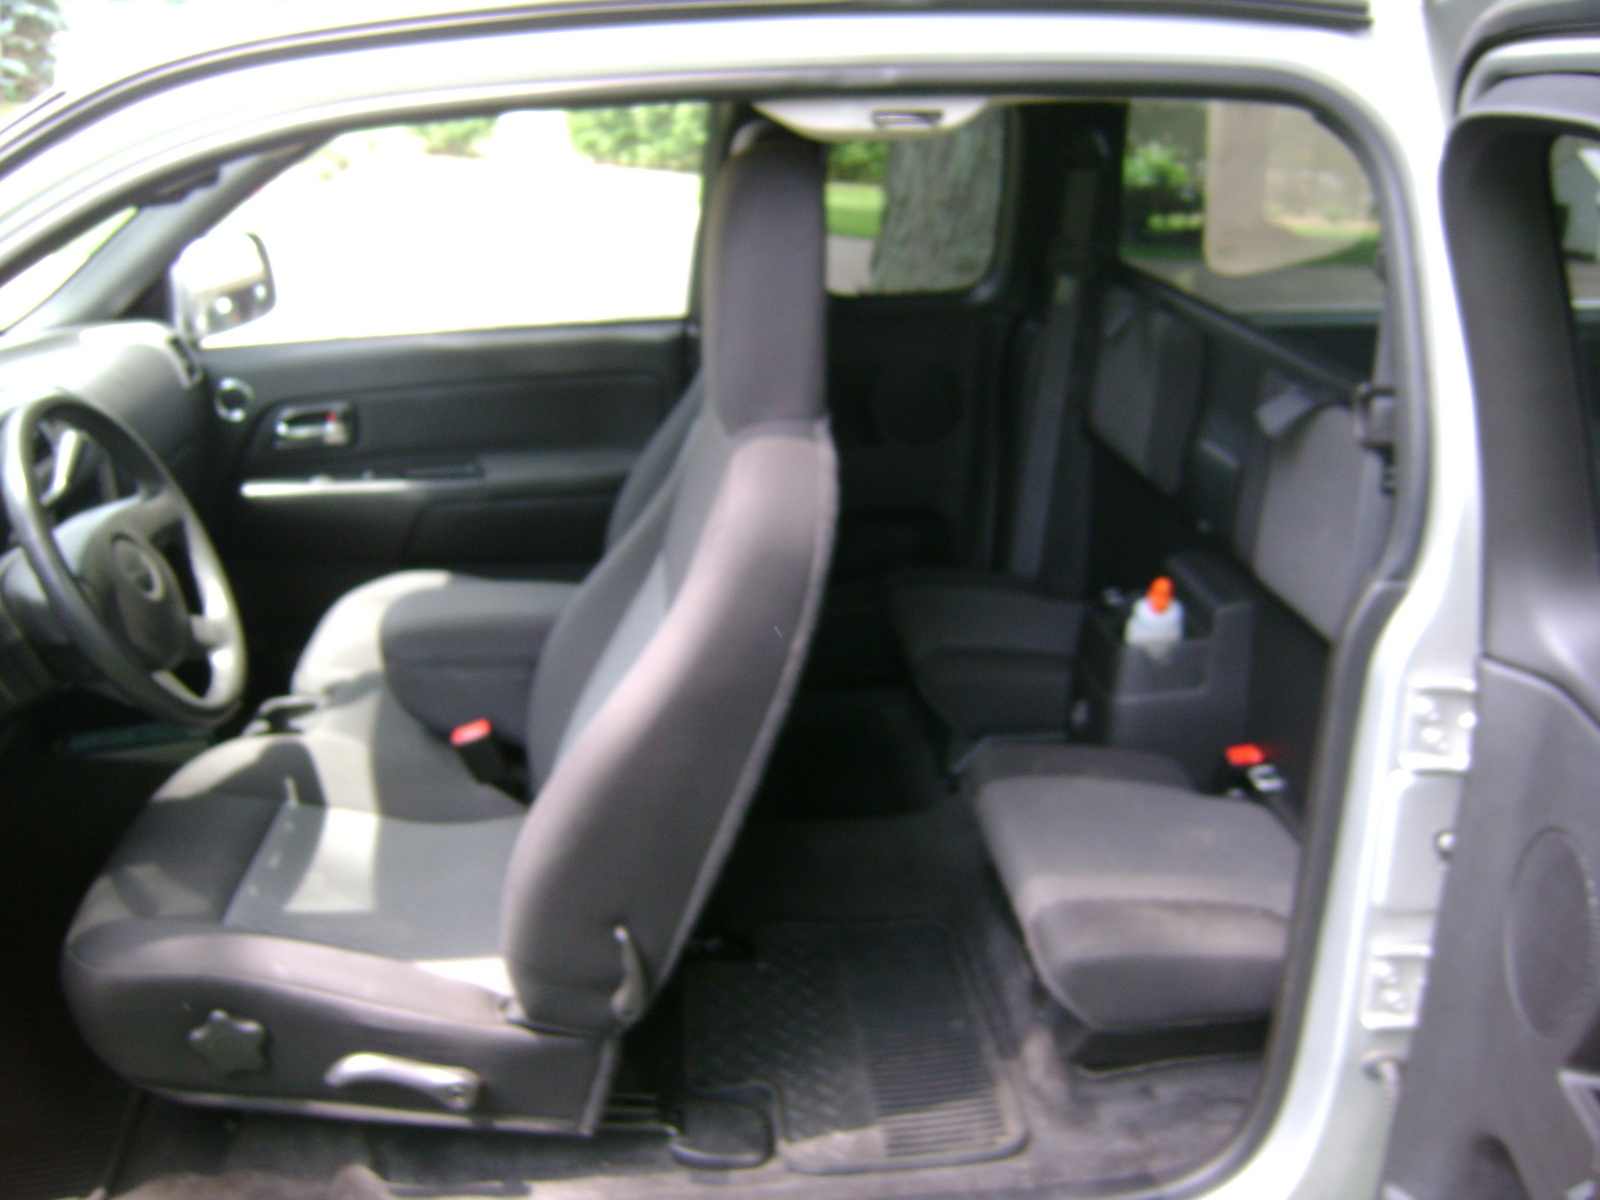 Picture of 2012 Chevrolet Colorado LT1 Ext. Cab